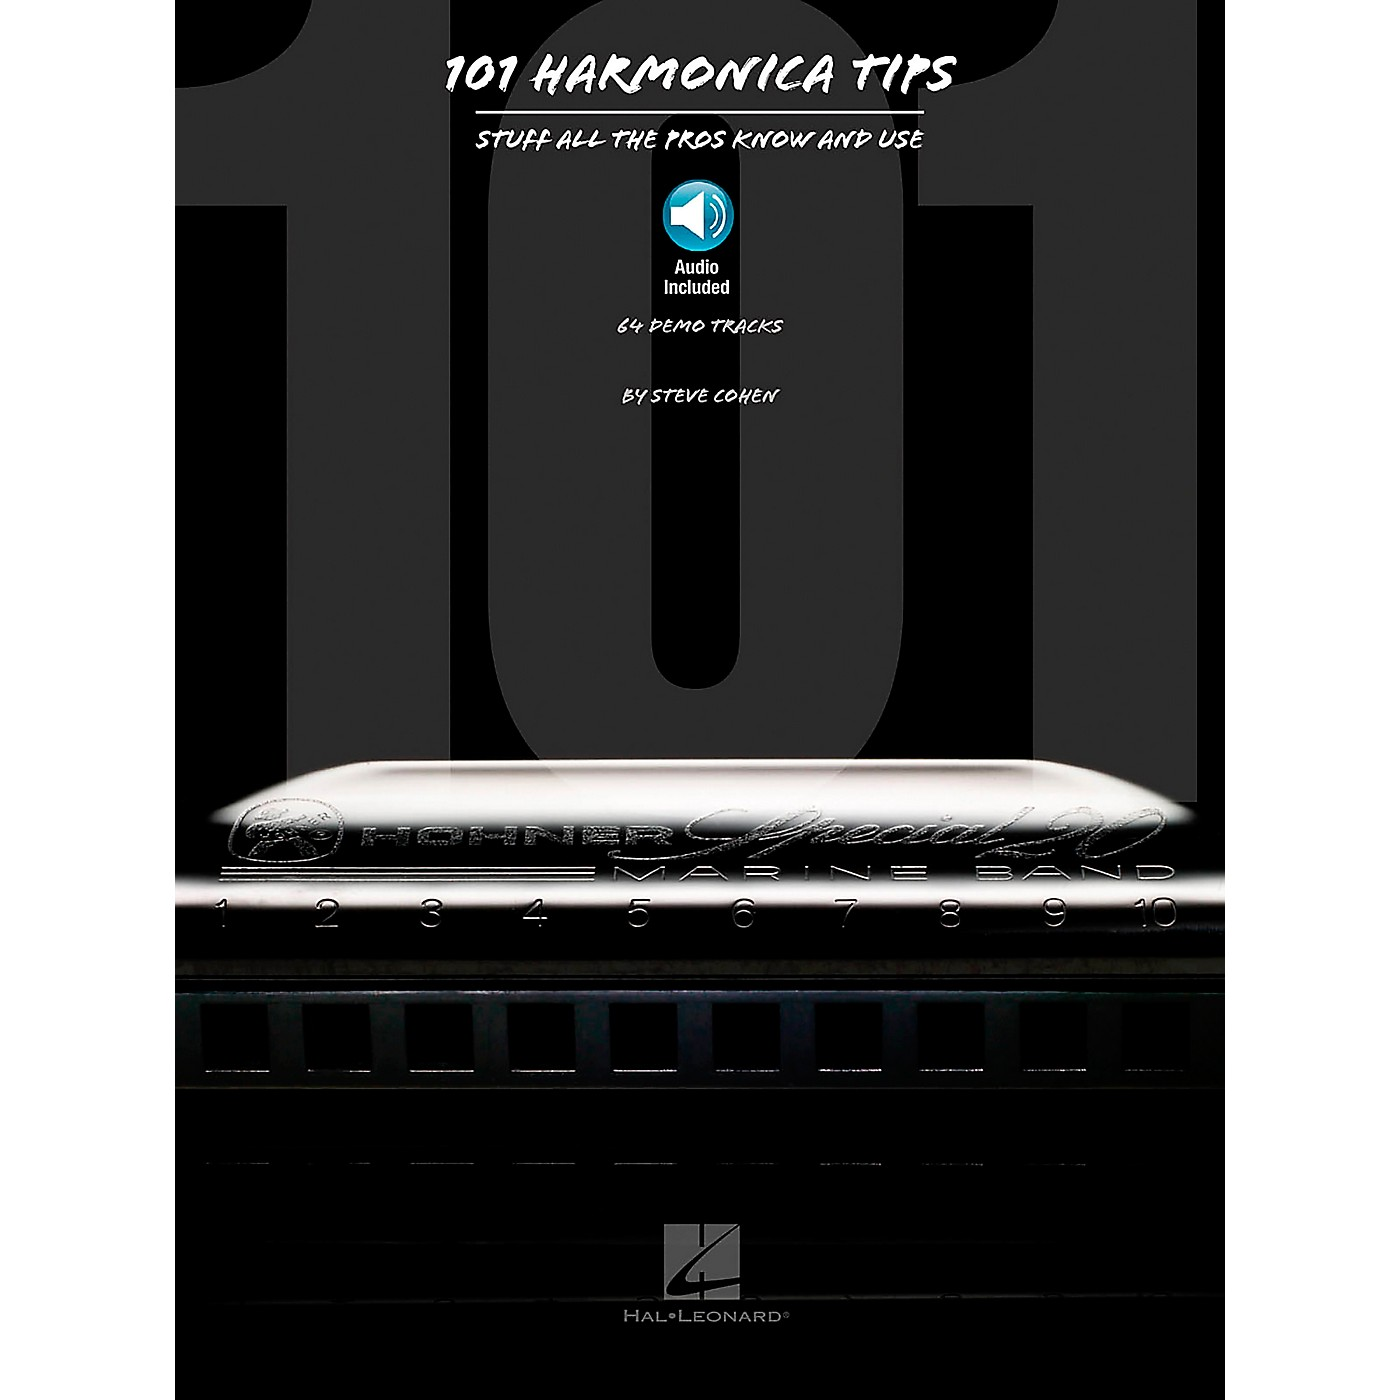 Hal Leonard 101 Harmonica Tips - Stuff All The Pros Know And Use (Book/Online Audio) thumbnail